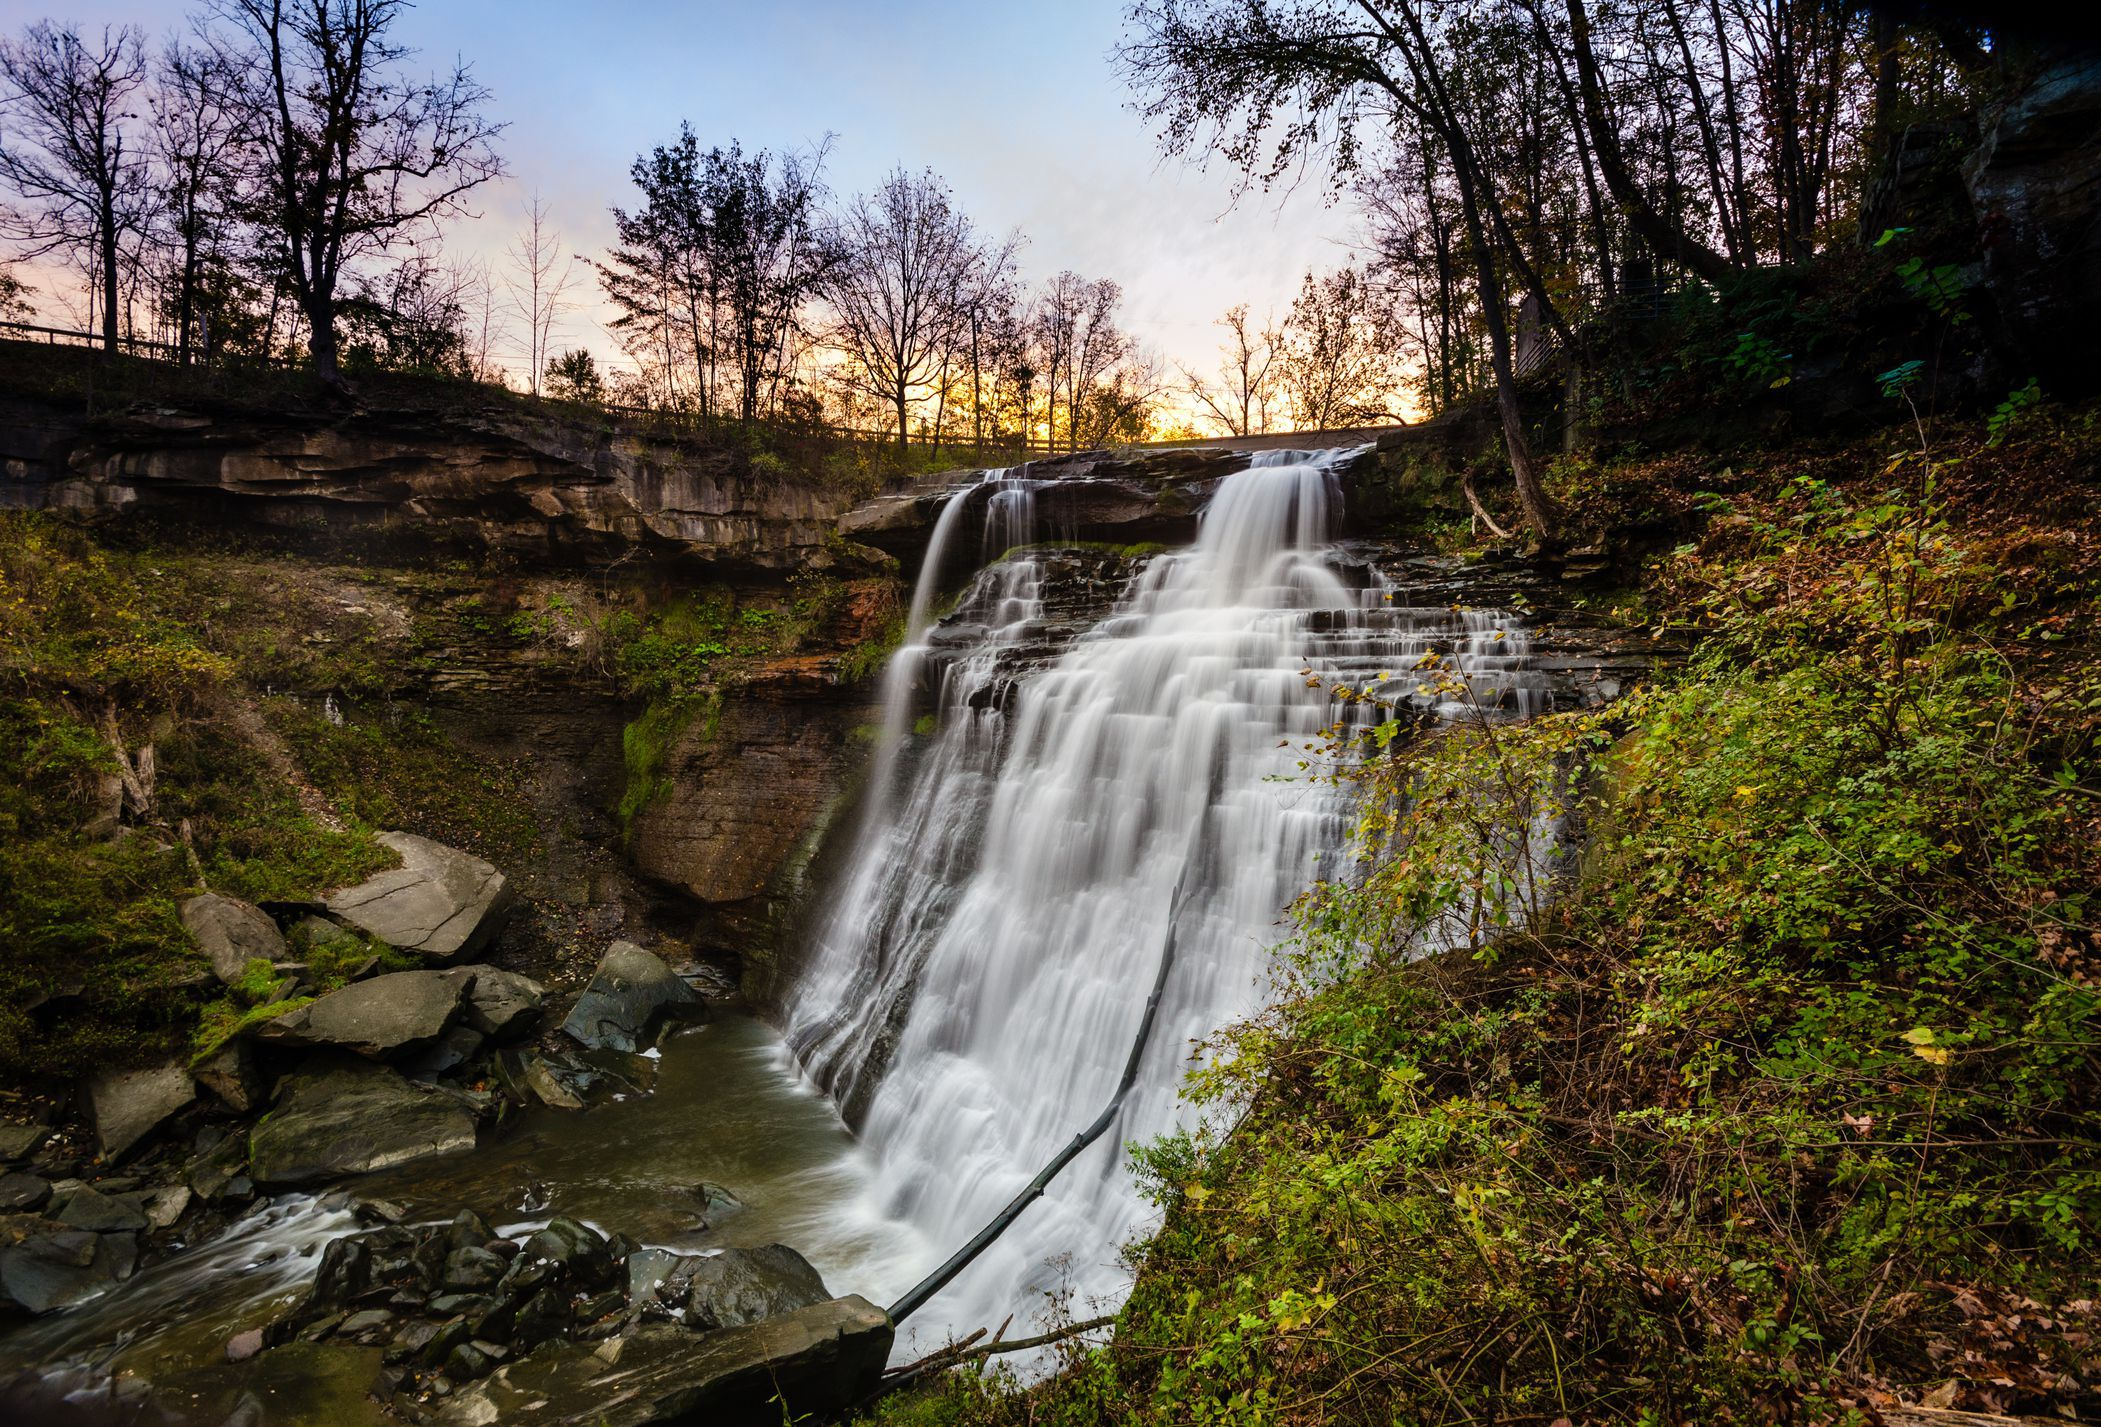 Day Trip Guide to Cuyahoga Valley National Park